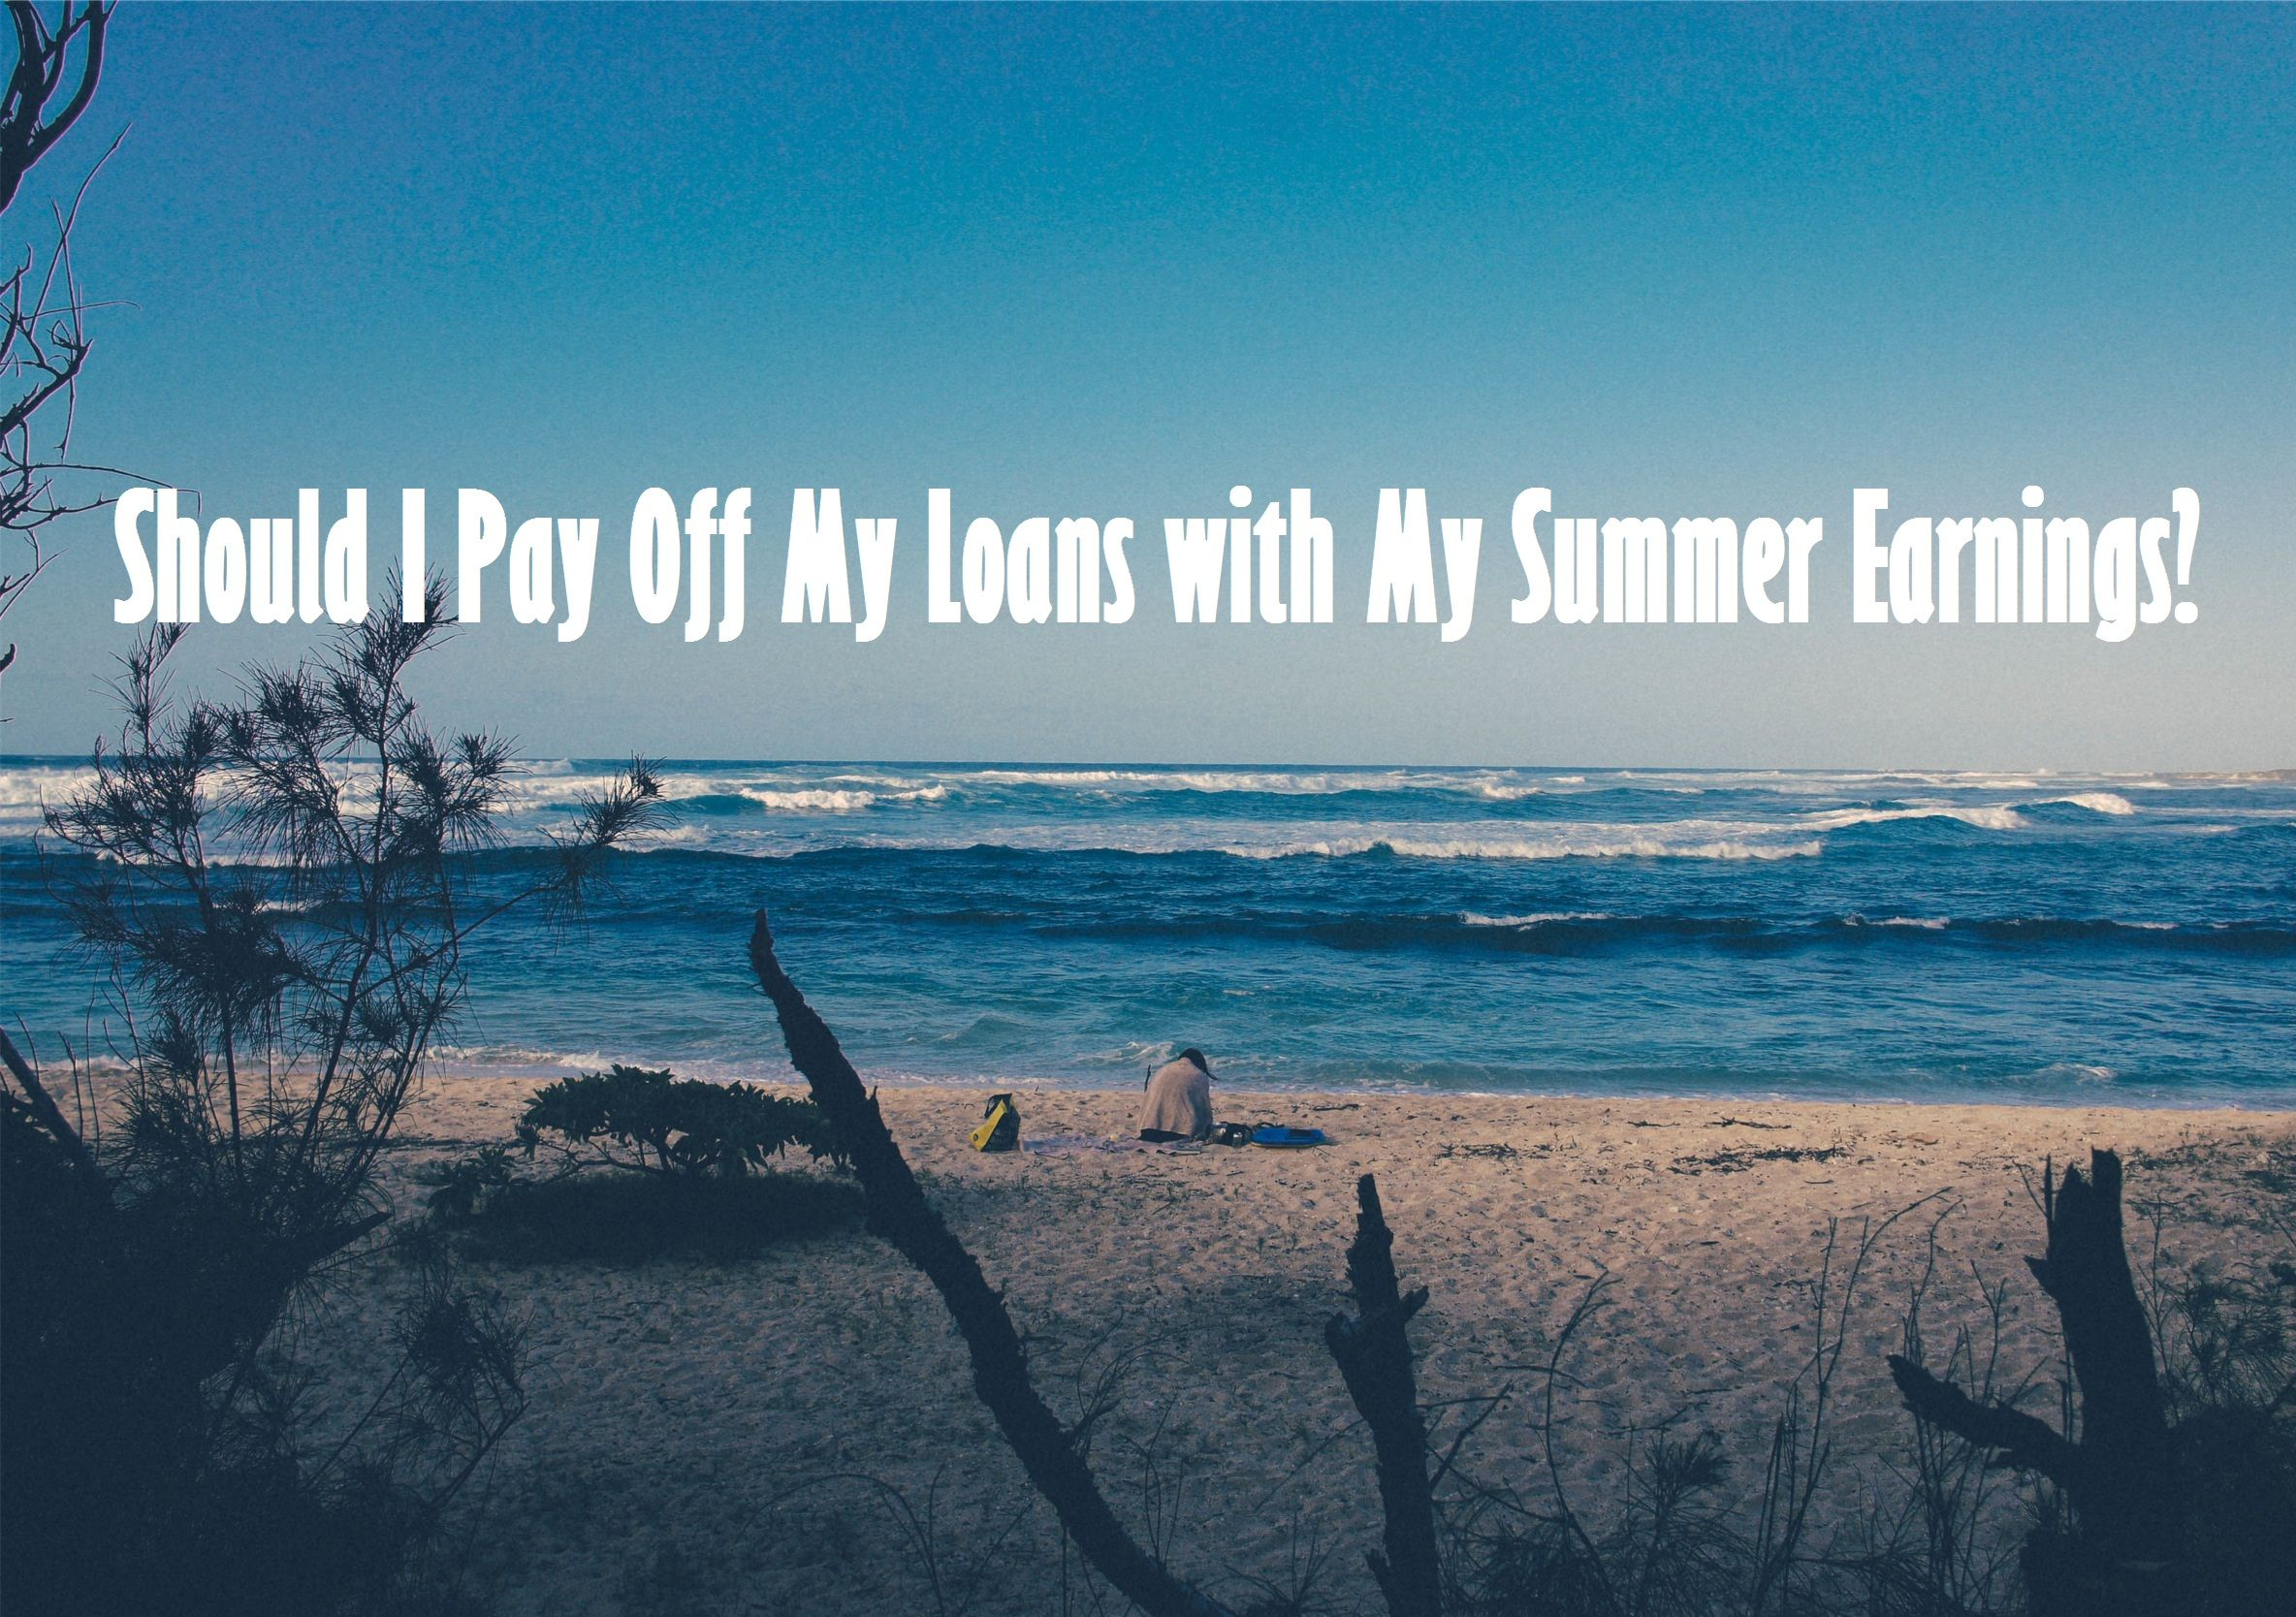 Should I Pay Off My Loans with My Summer Earnings ...